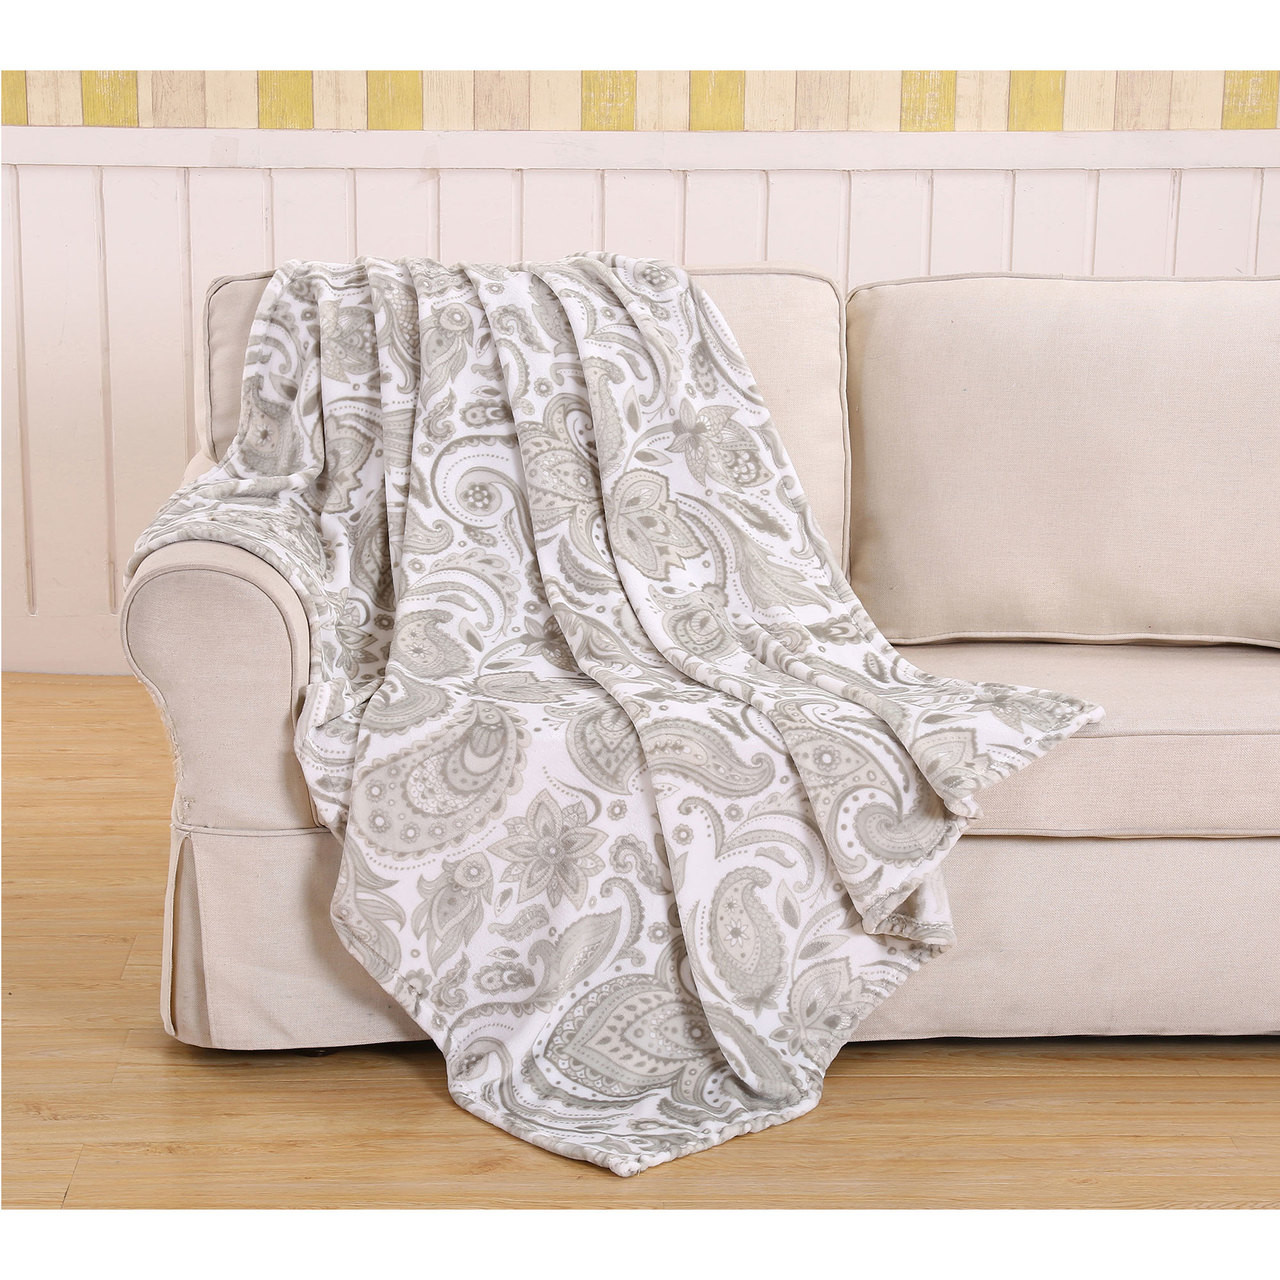 Throw Blankets Jessica Collection Micro Plush 50x60 Throw Blankets